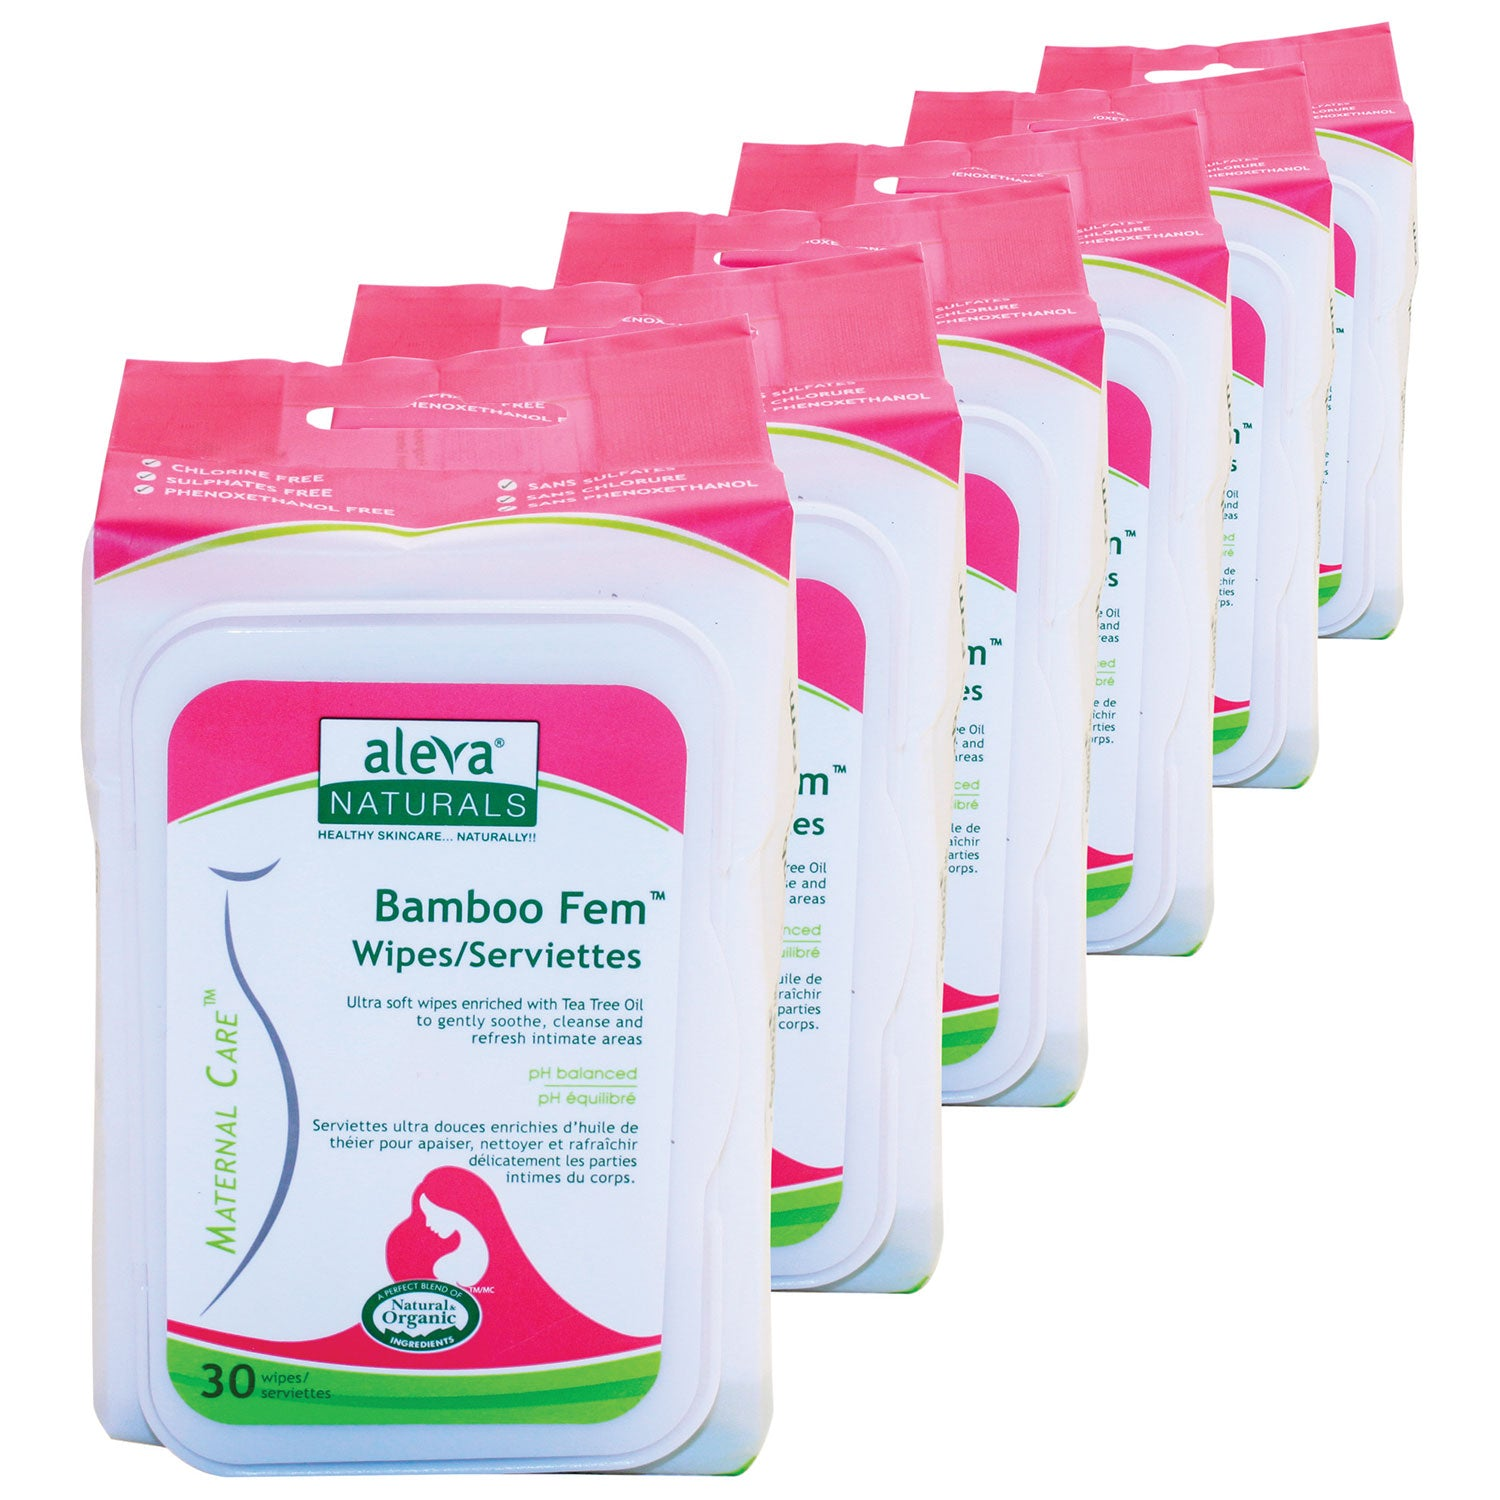 Https Daily Products Buy 2 Get 20 Chicco Baby Nail Scissors Pink Massage Oil Aleva Bamboo Fem Wipes 2v1505593713